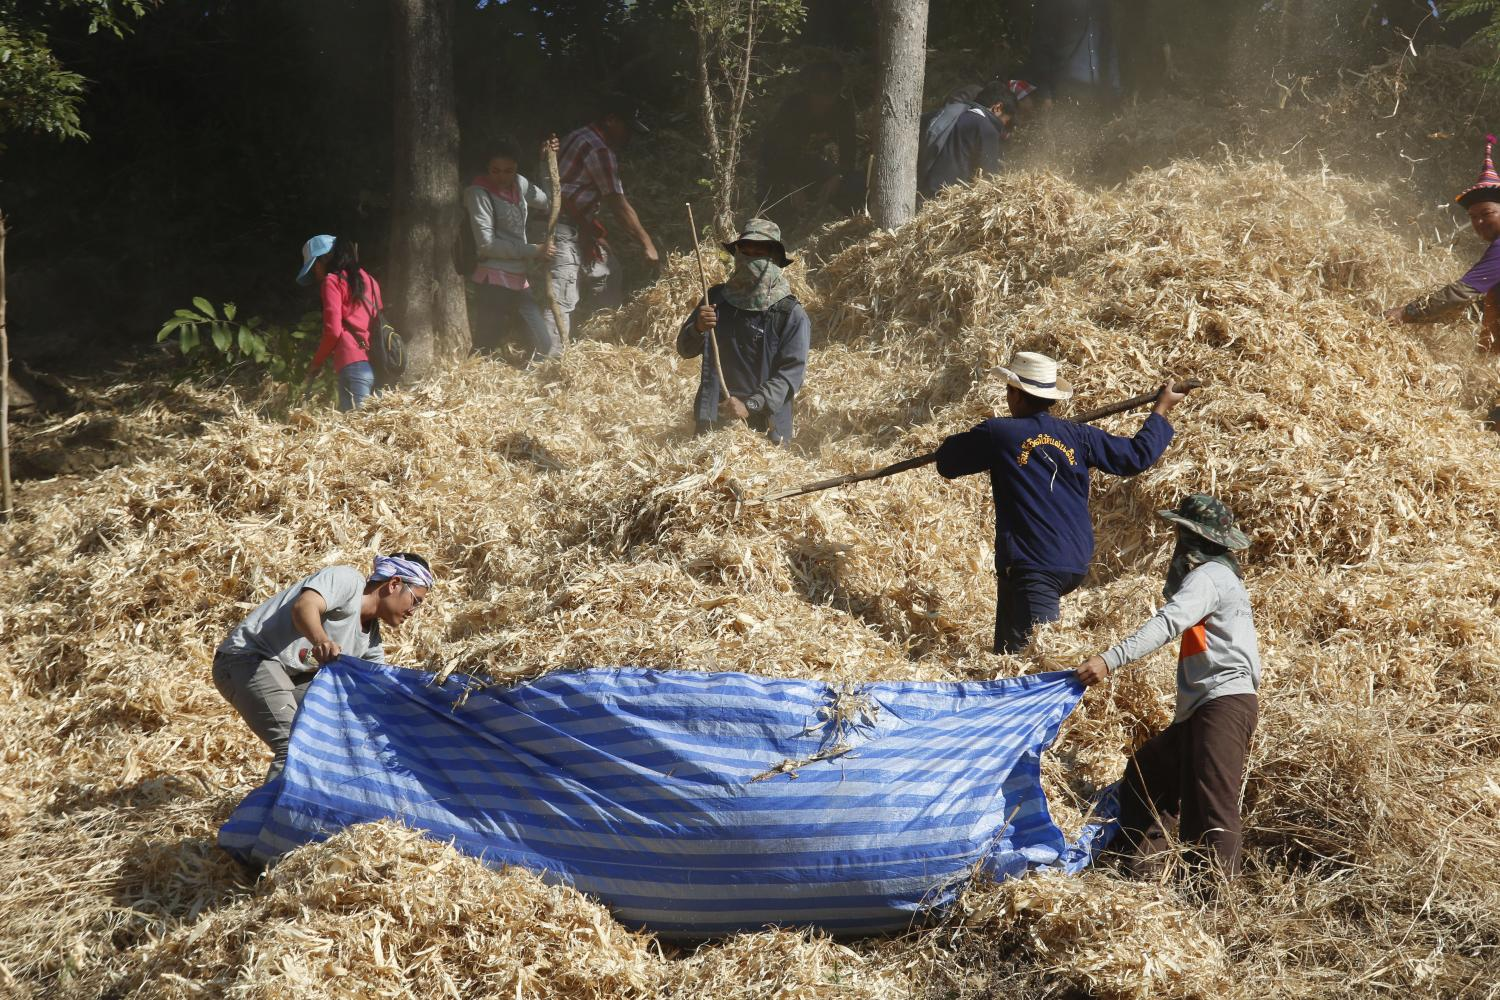 Locals in Nan cover soil with hay before pouring water on it, a sufficiency economy tecnique. (Photo by Pattarapong Chatpattarasill)